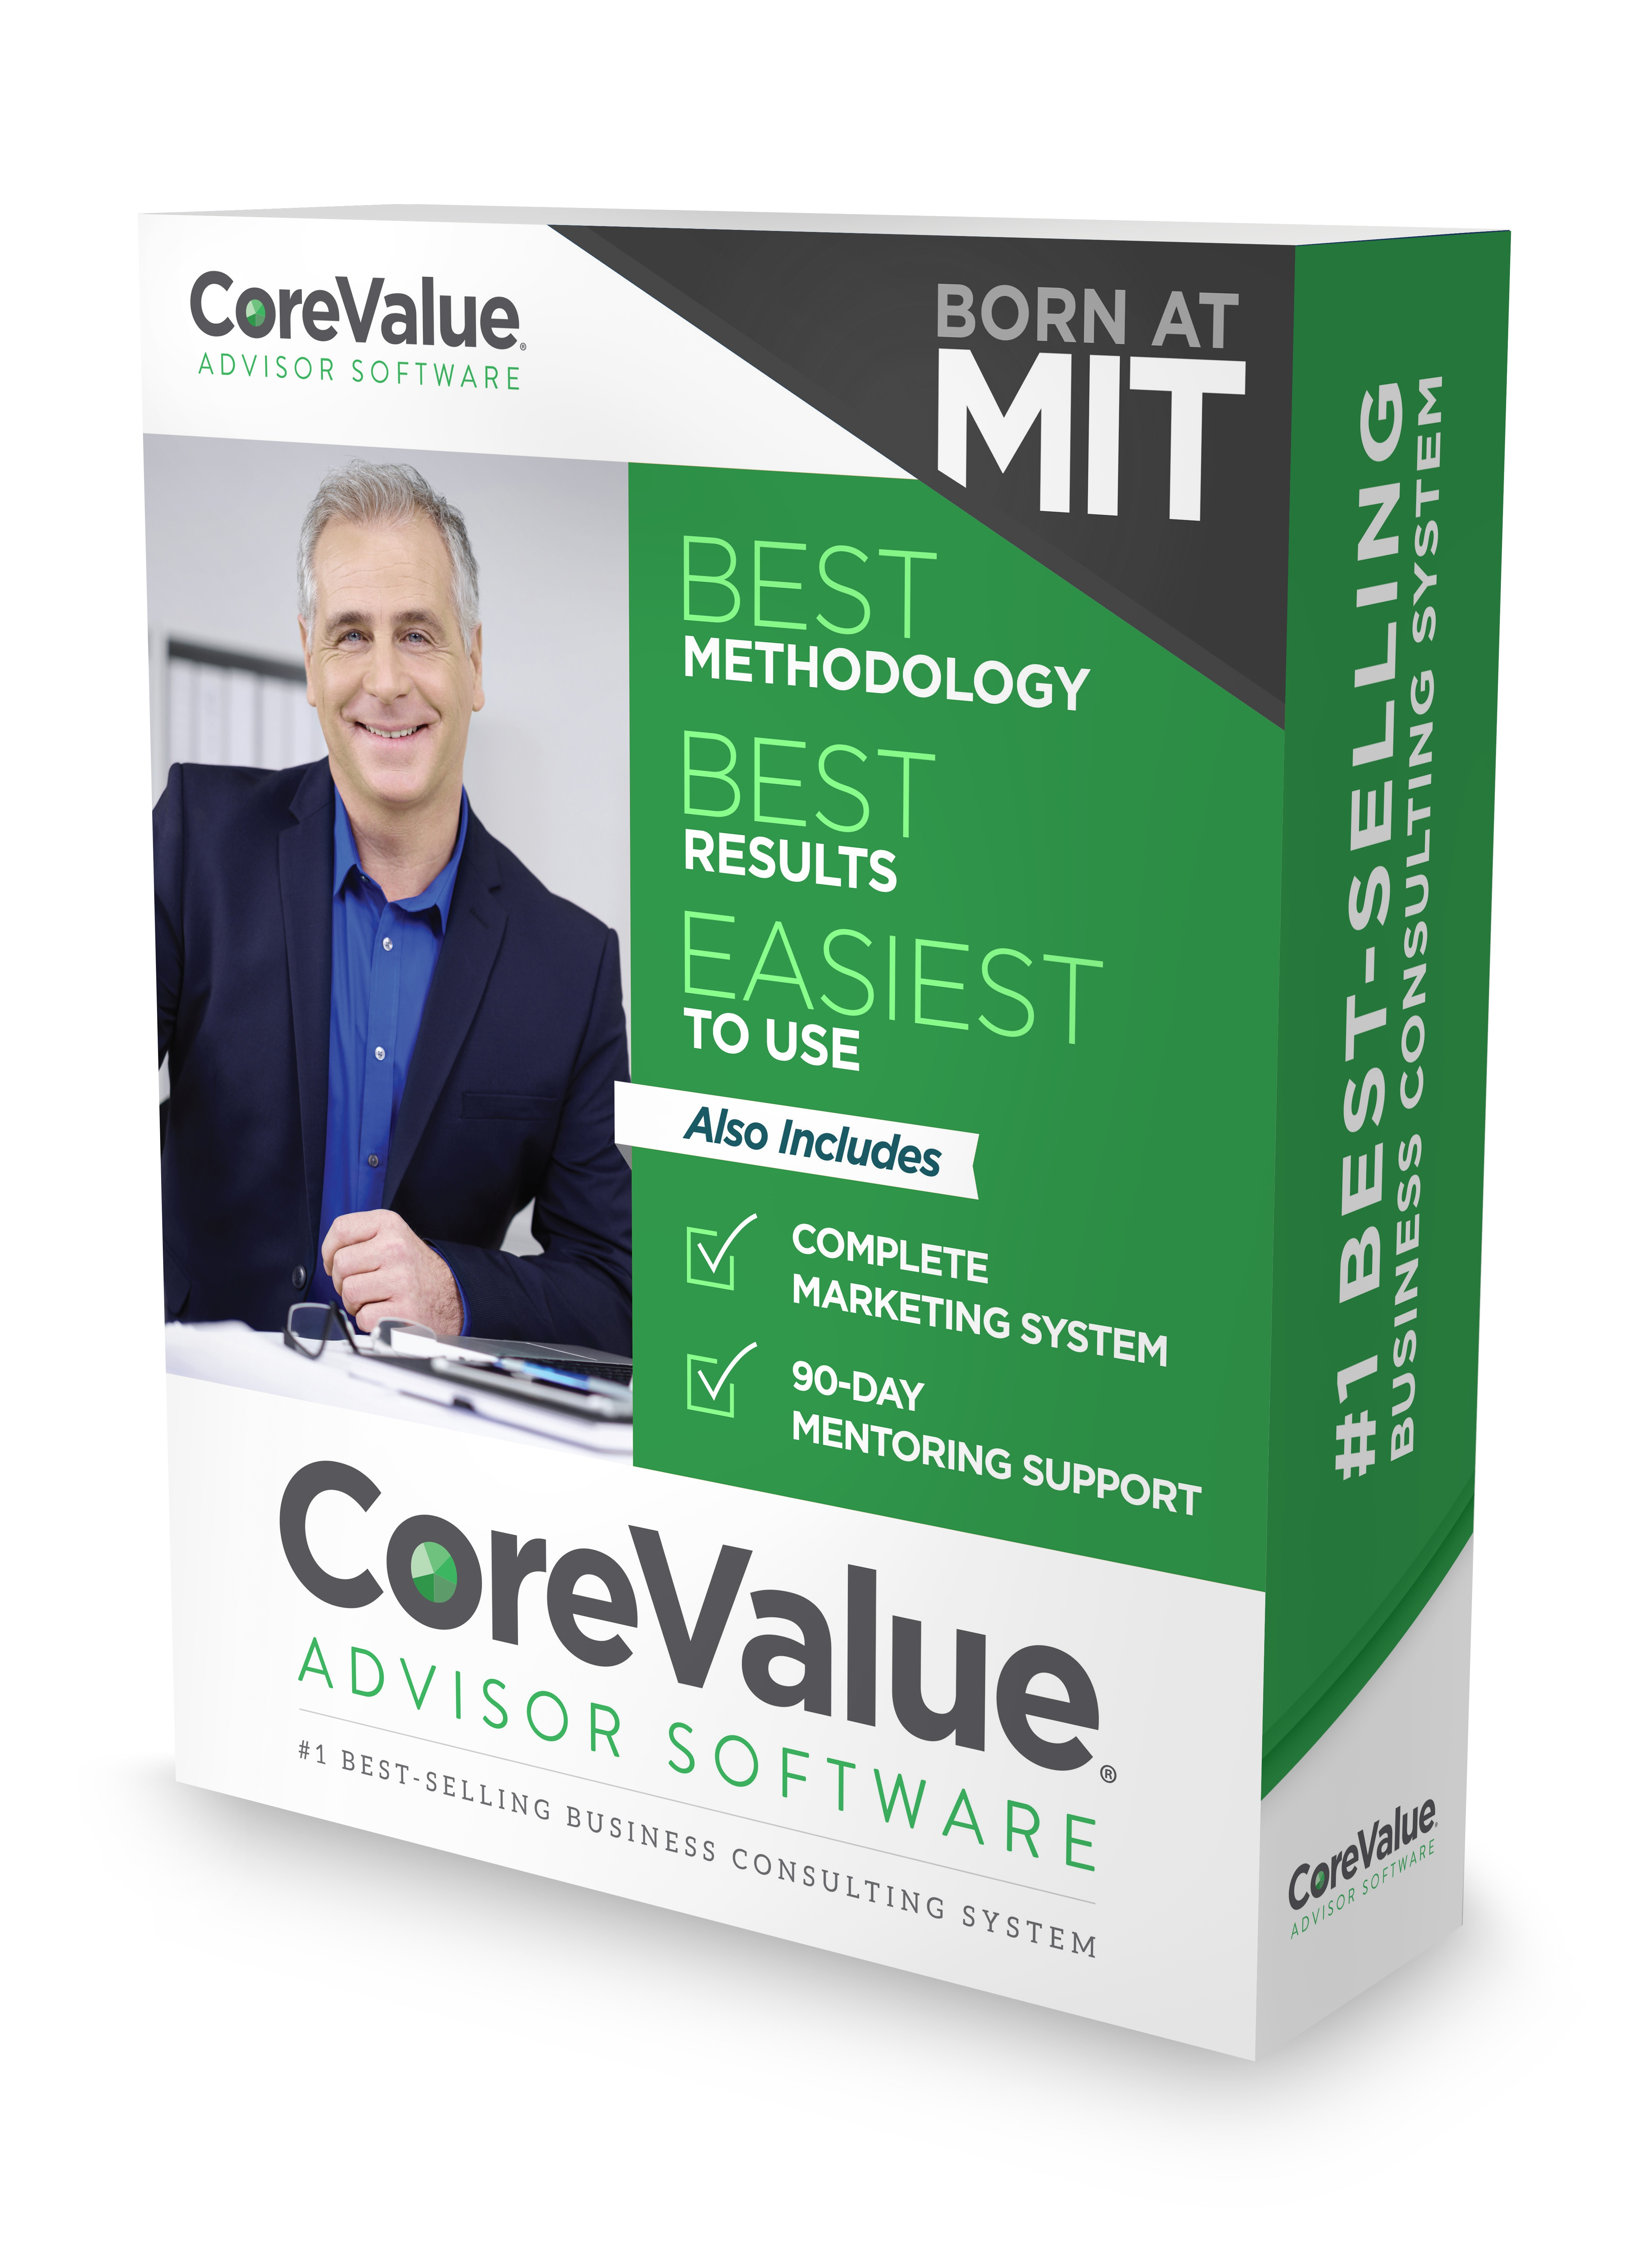 CoreValue Advisor-3D-Box-LEFT.jpg